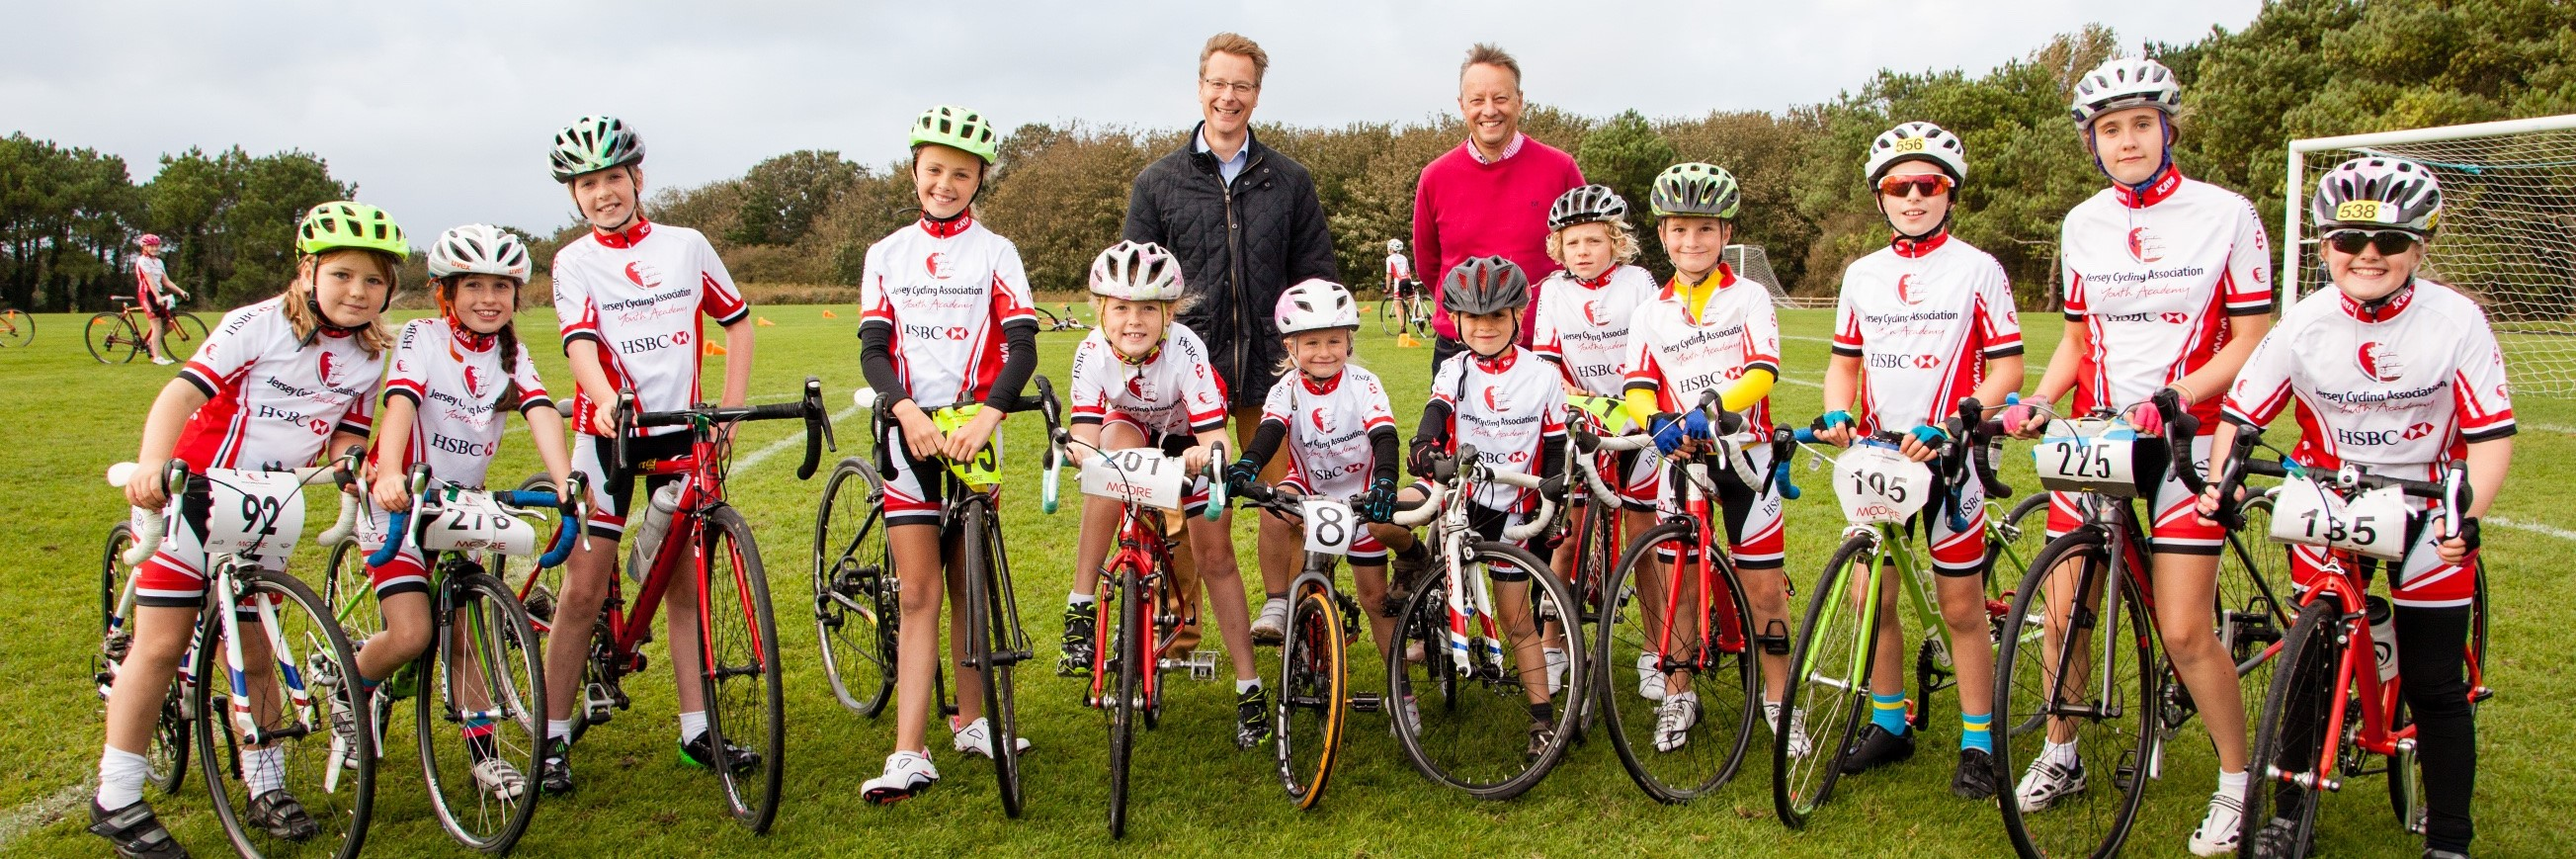 Jersey Youth Cycling Riders